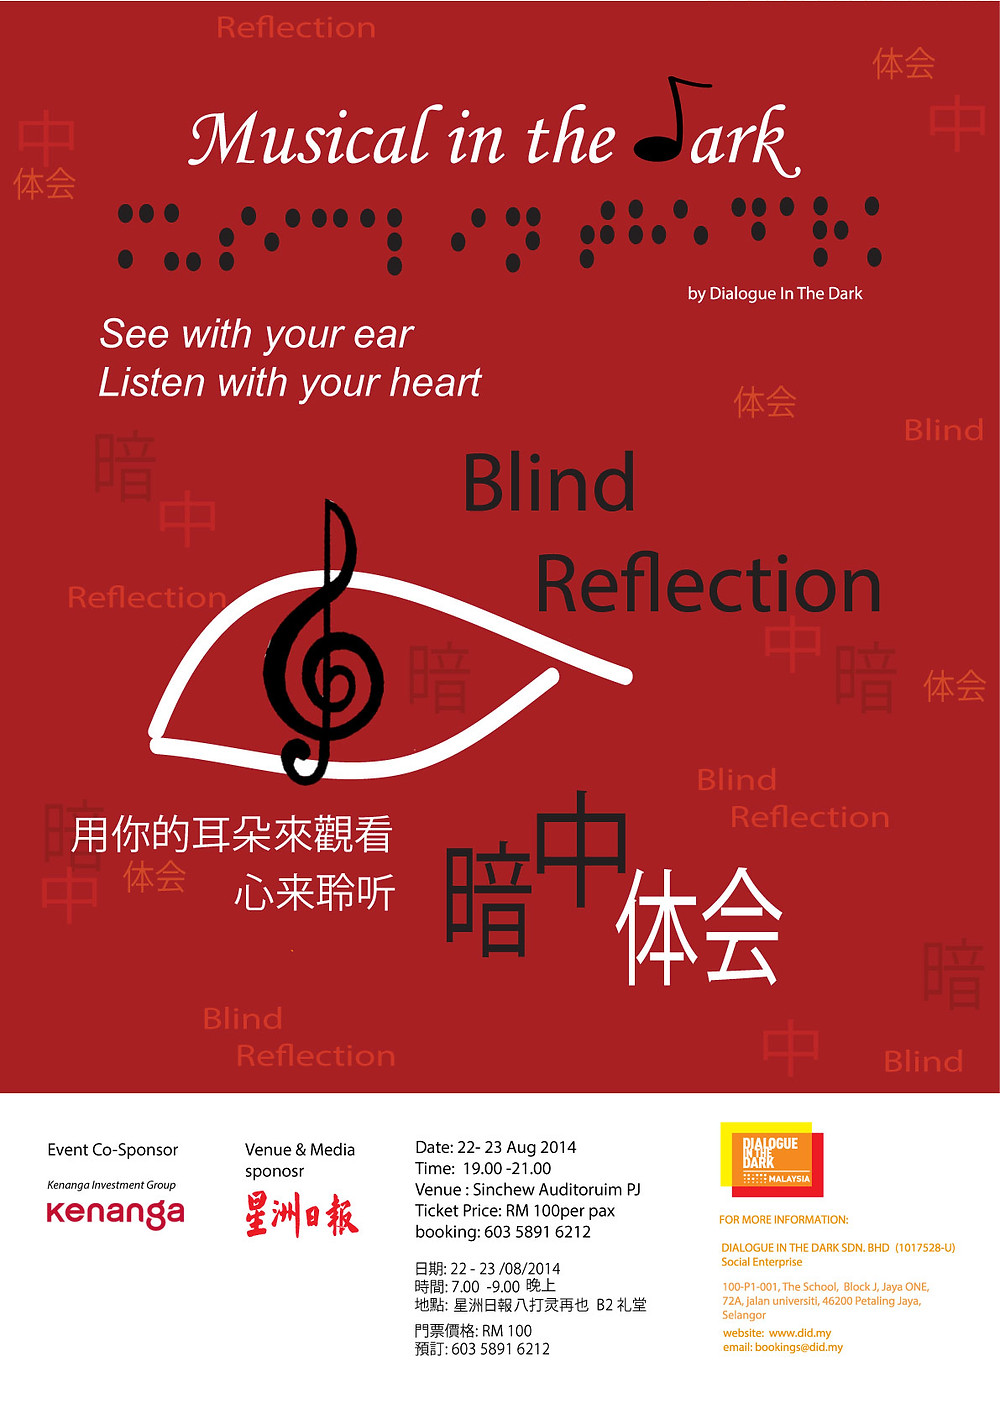 See with your ears, listen with your heart. Blind reflections.